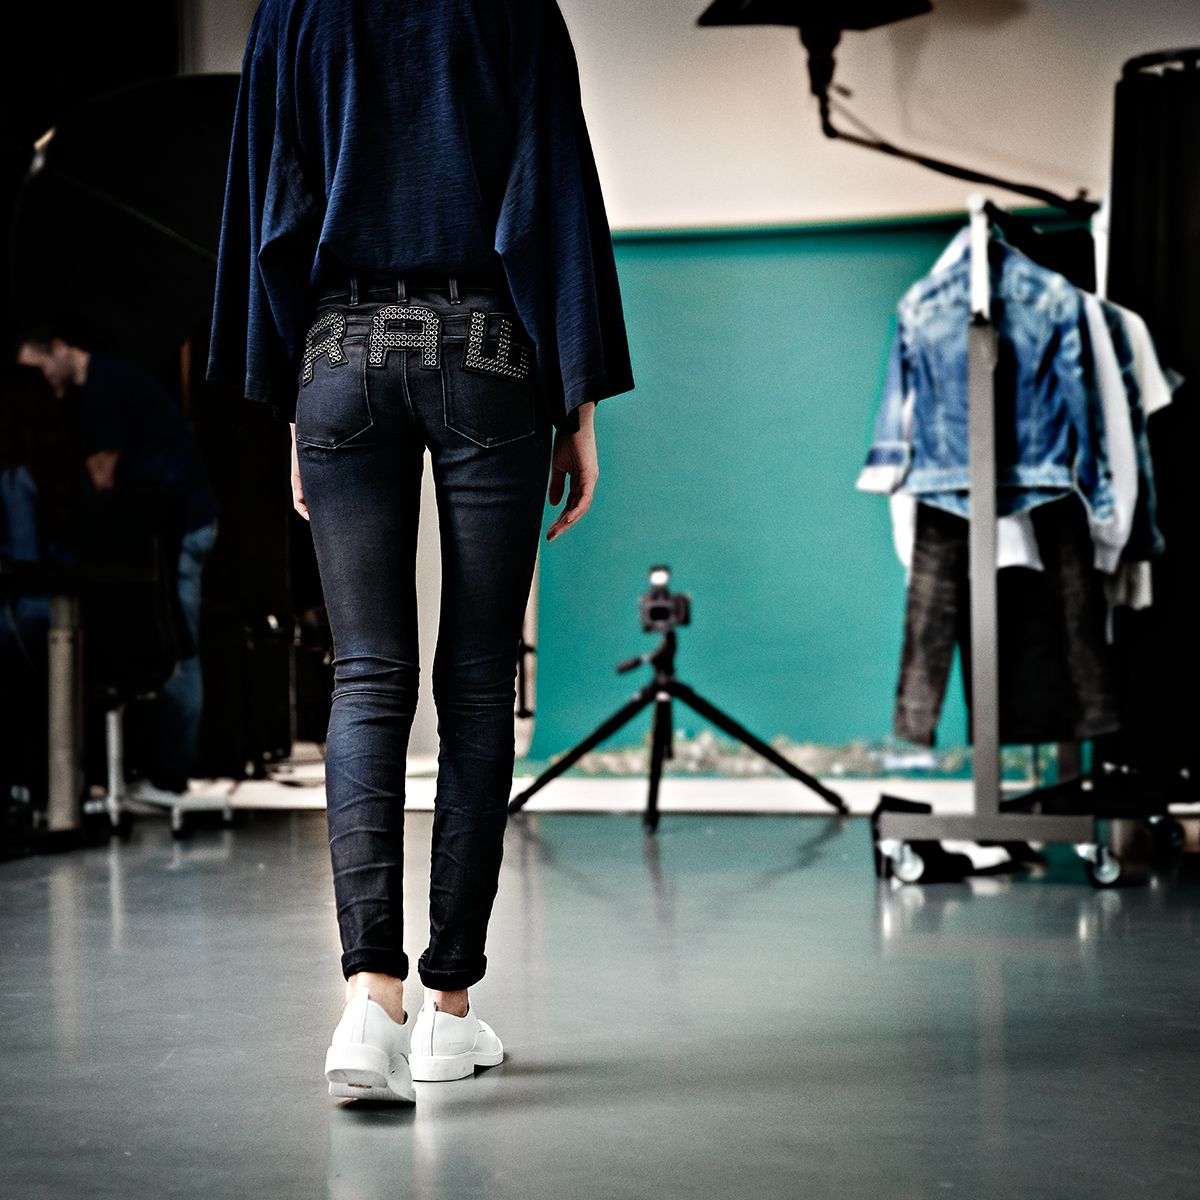 5260 G Star Elwood X Raw For The Oceans Clothes For Women G Star G Star Raw